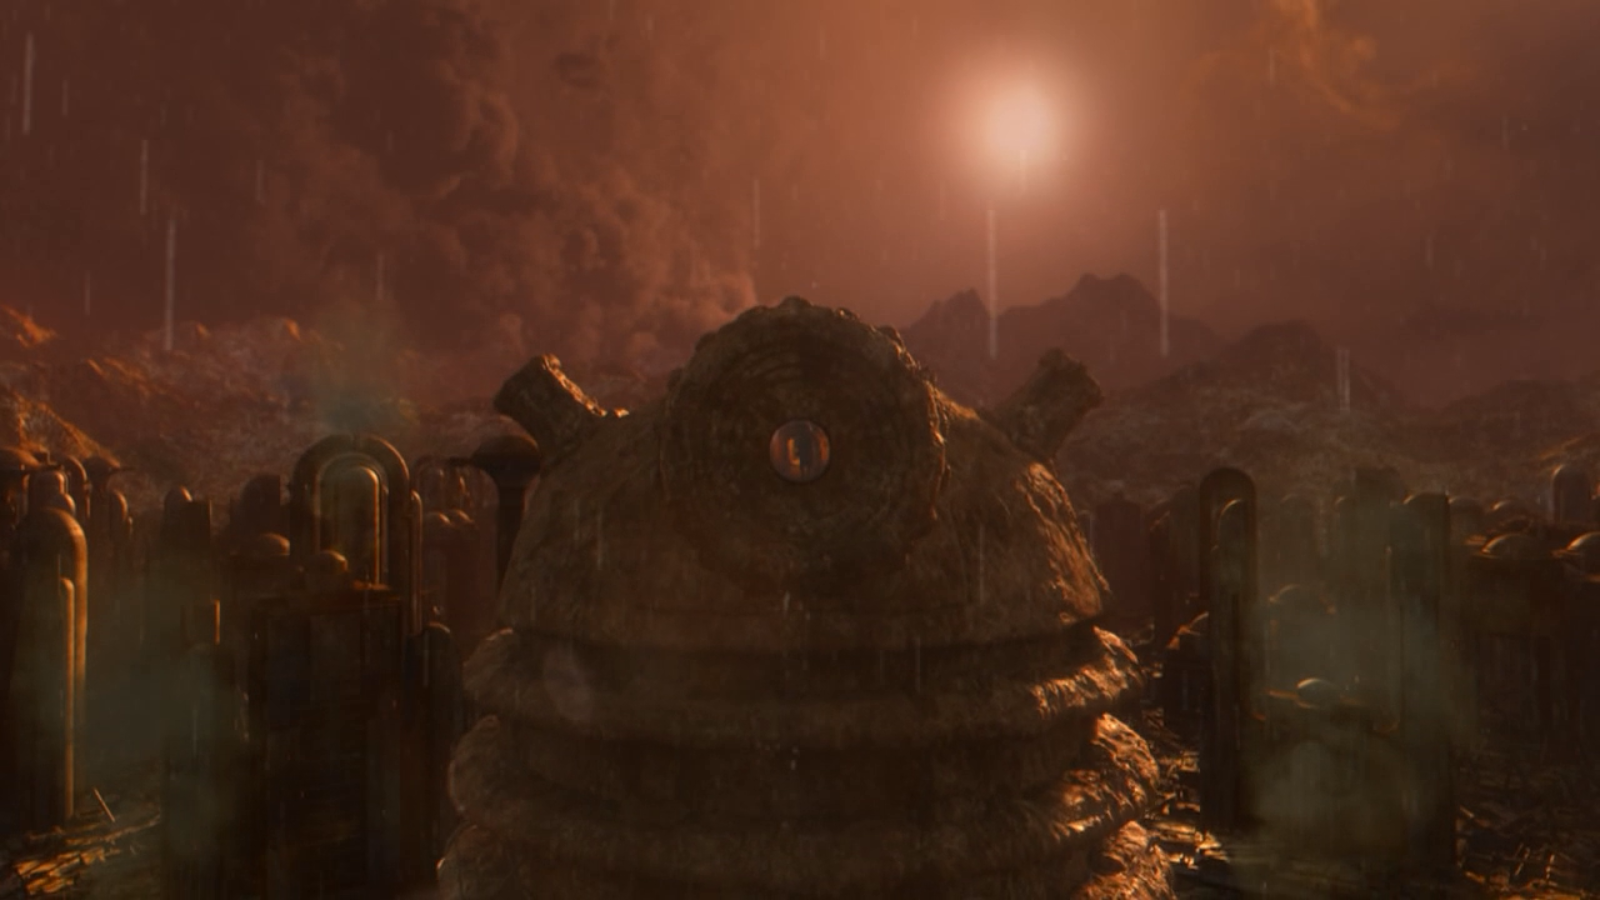 Is it cheating to use Skaro as the image?